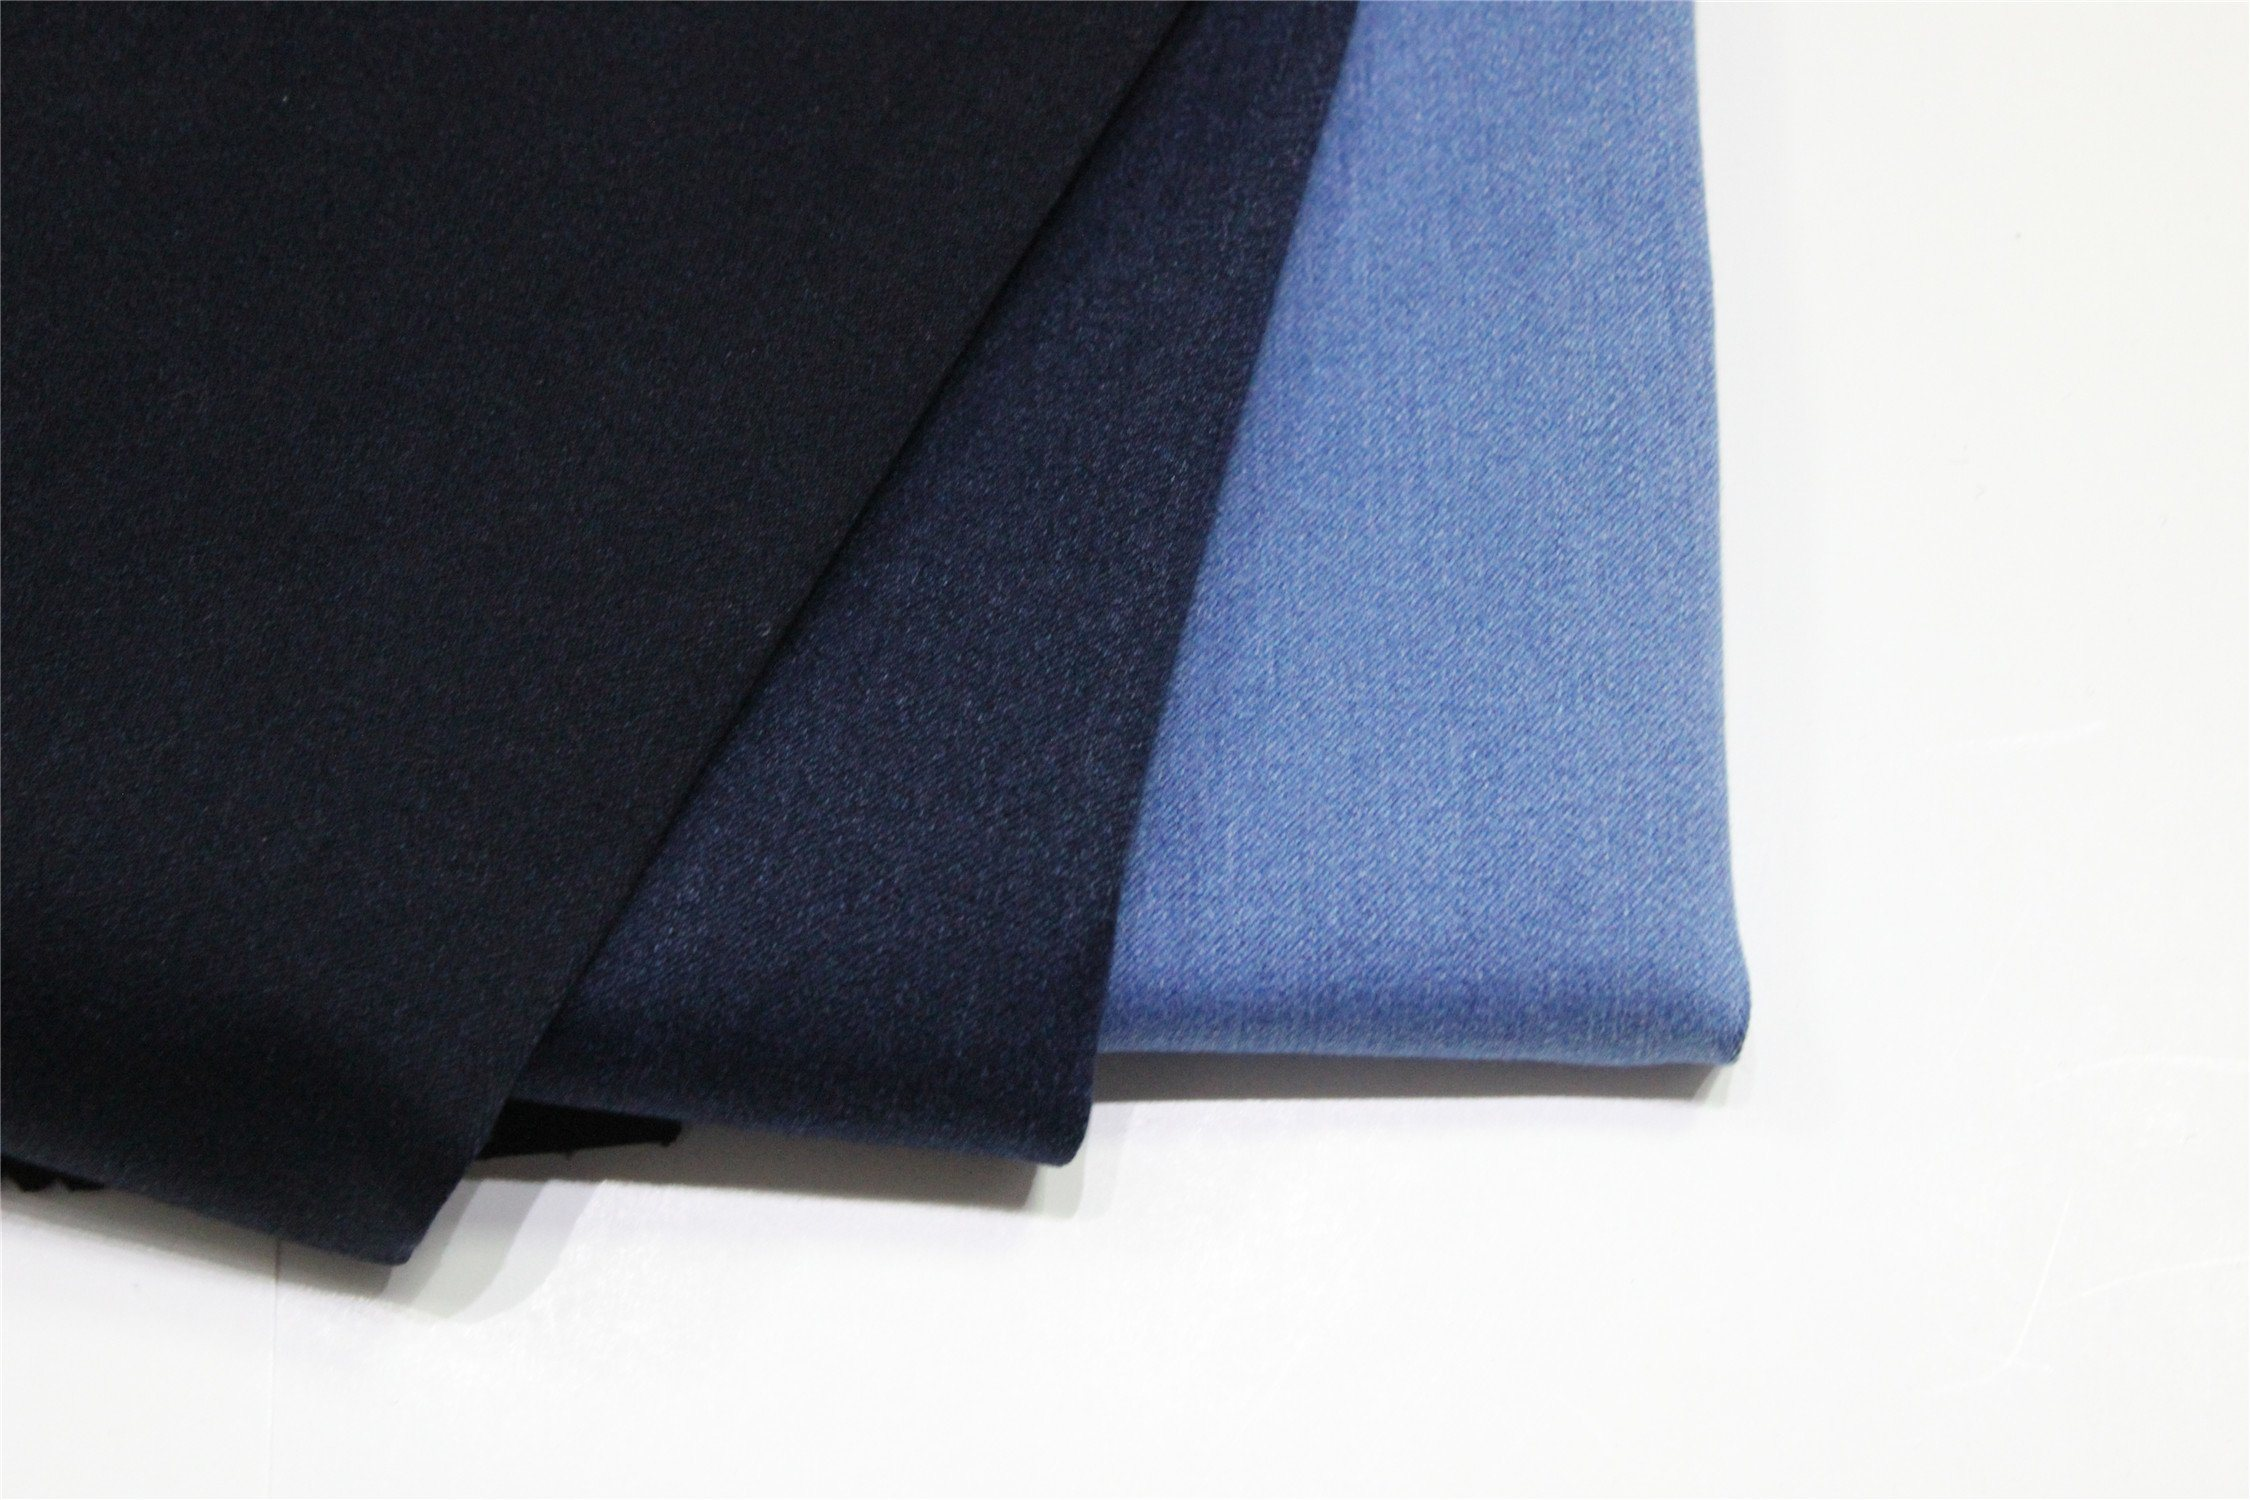 Rayon Polyester Cotton Spandex Denim